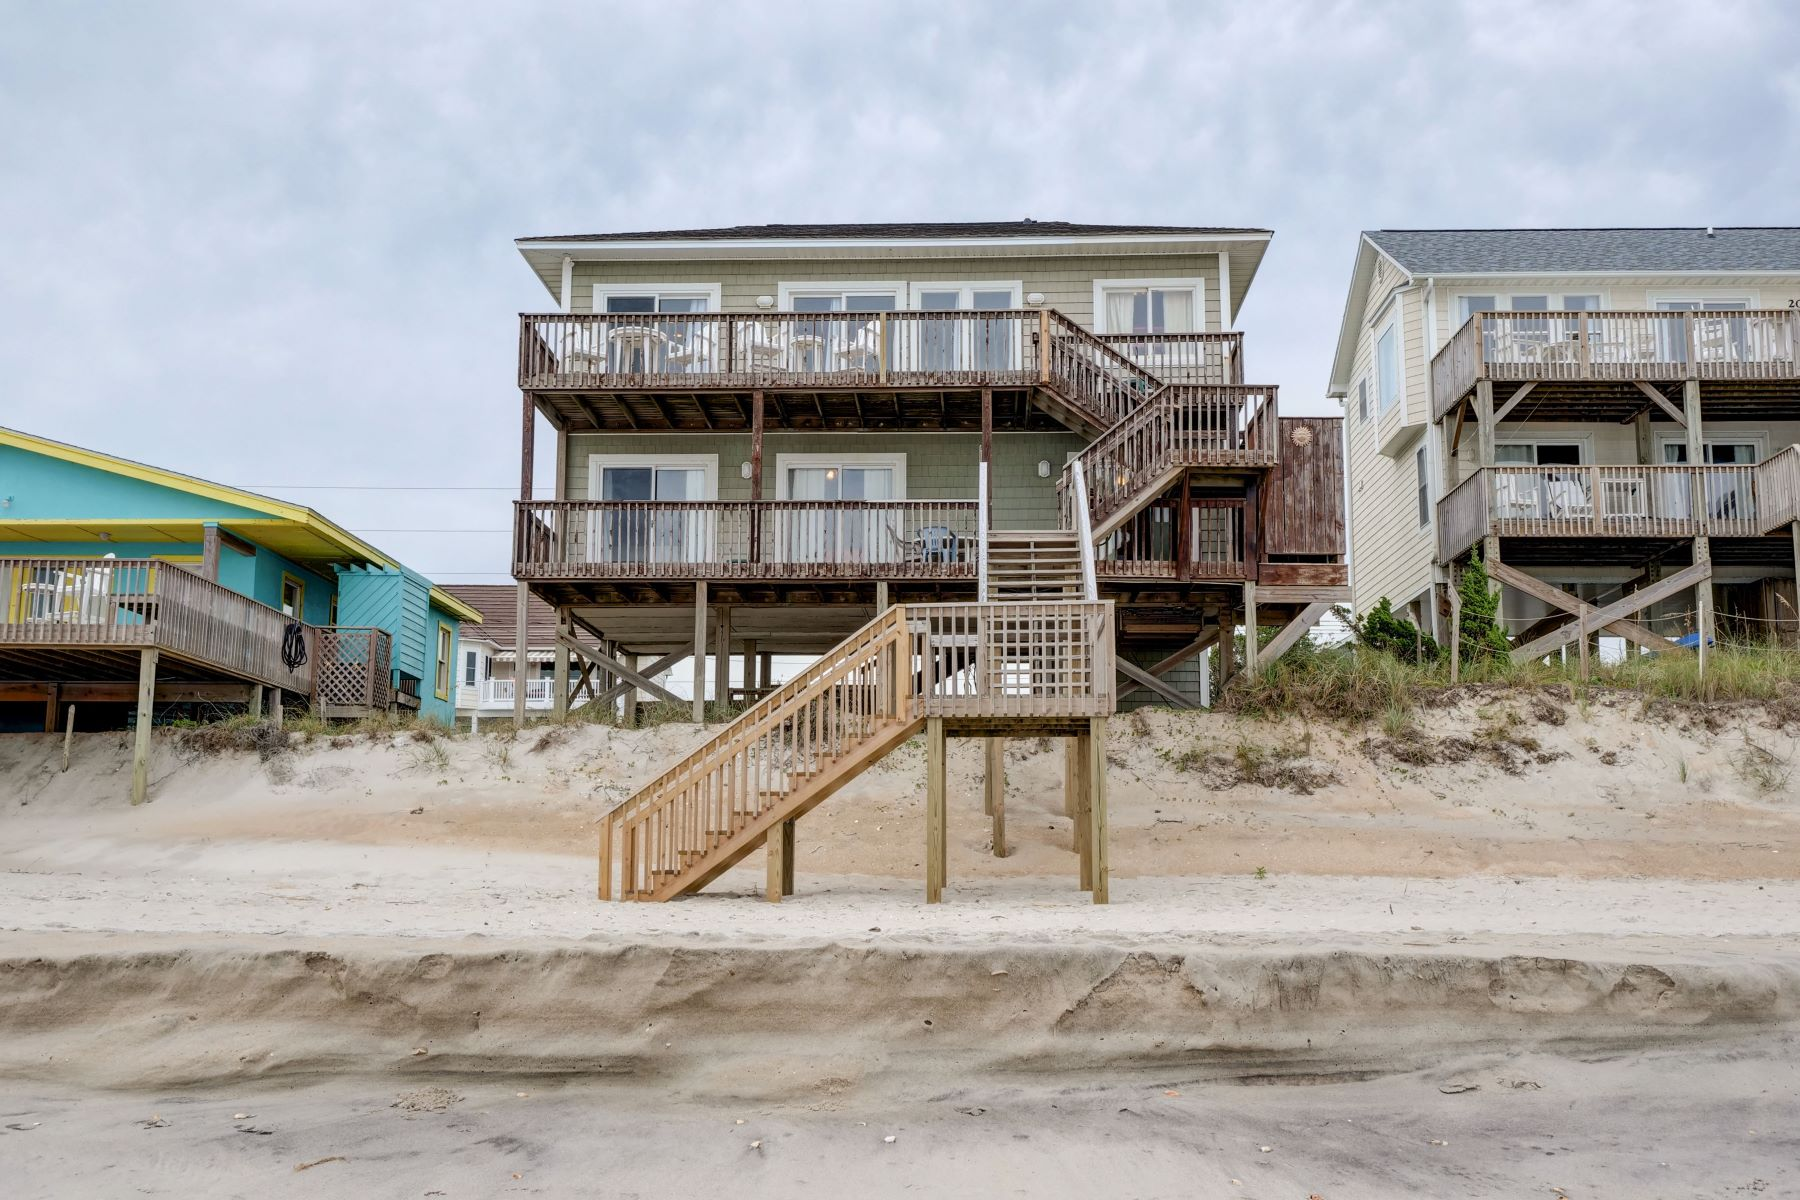 Single Family Homes for Sale at Beach Front Home in Surf City 2008 S Shore Dr Surf City, North Carolina 28445 United States